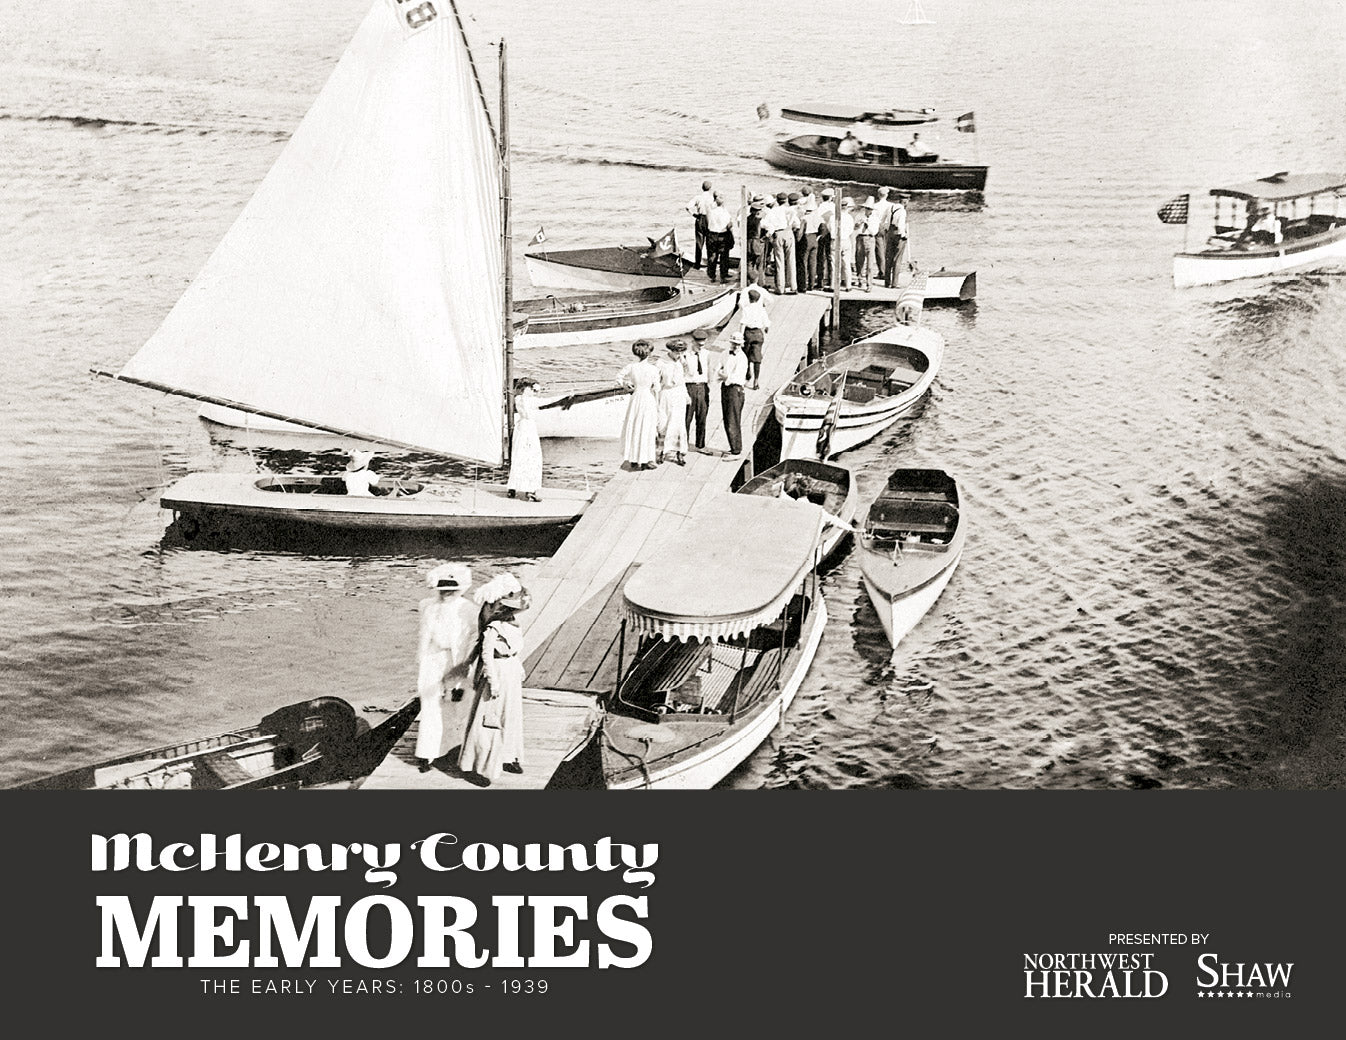 McHenry County Memories cover